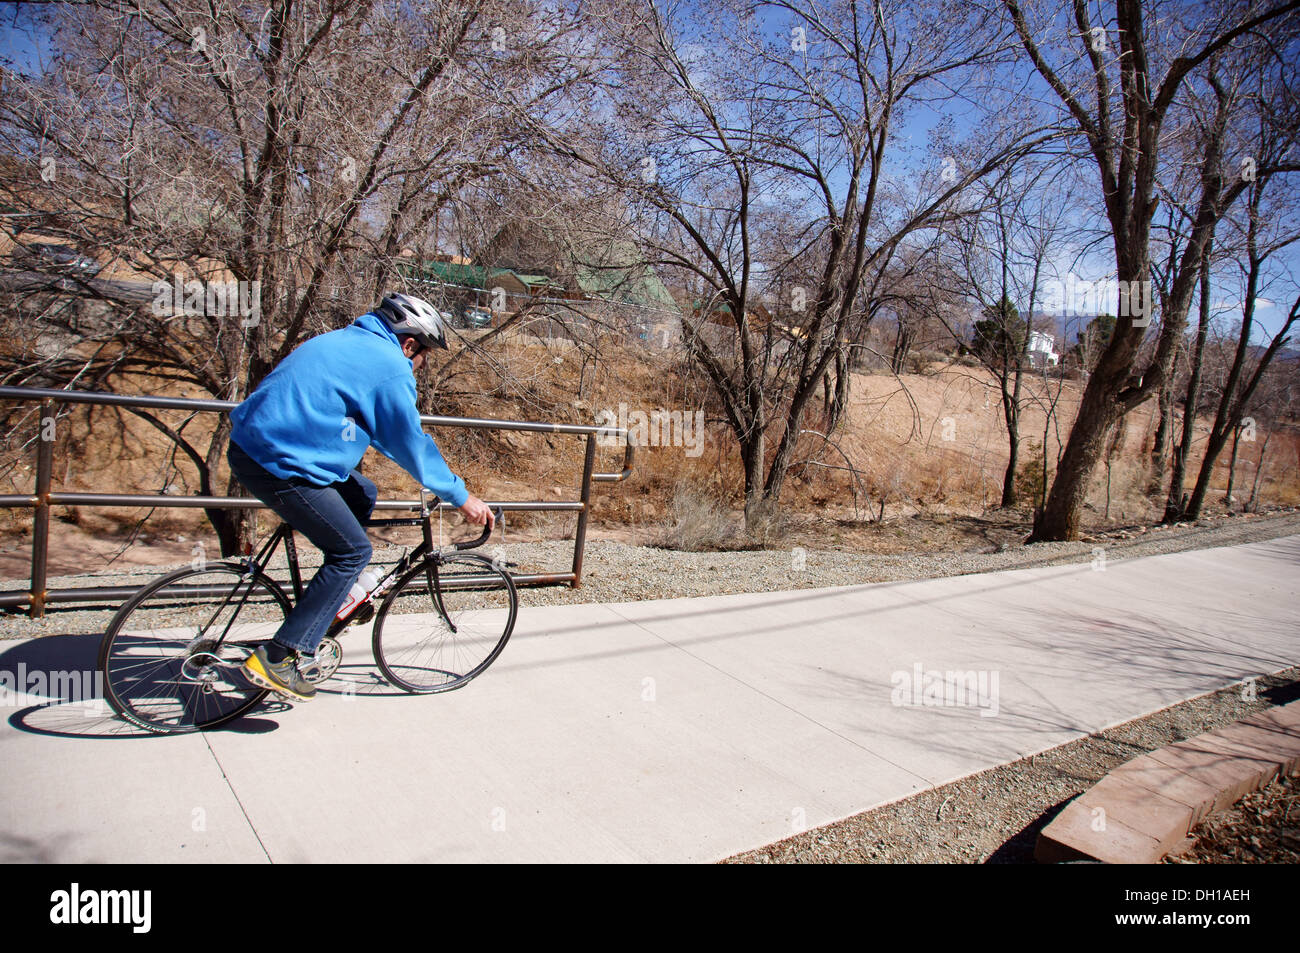 Man Male Riding Bike Bicycle Alto Bicentennial Walking Park Santa